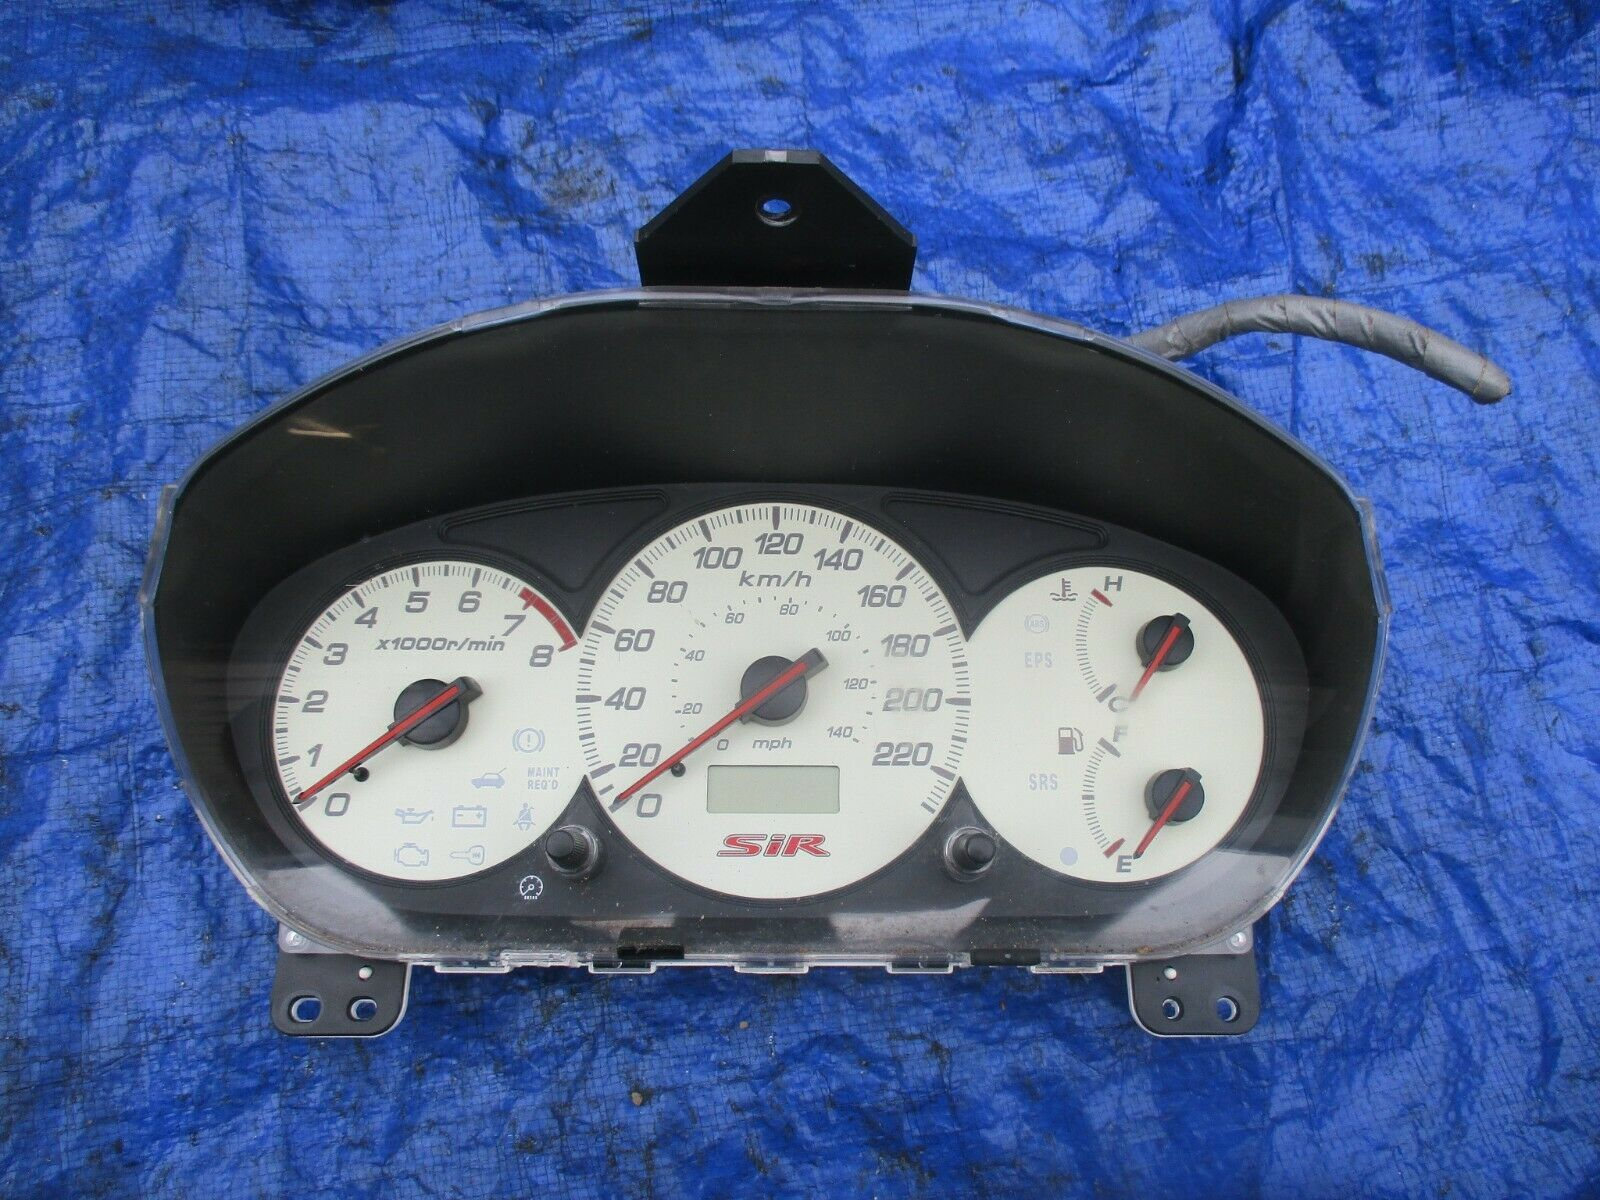 Primary image for 02-04 Honda Civic EP3 SIR instrument gauge cluster OEM speedo 78100-S5T-C110 KMH